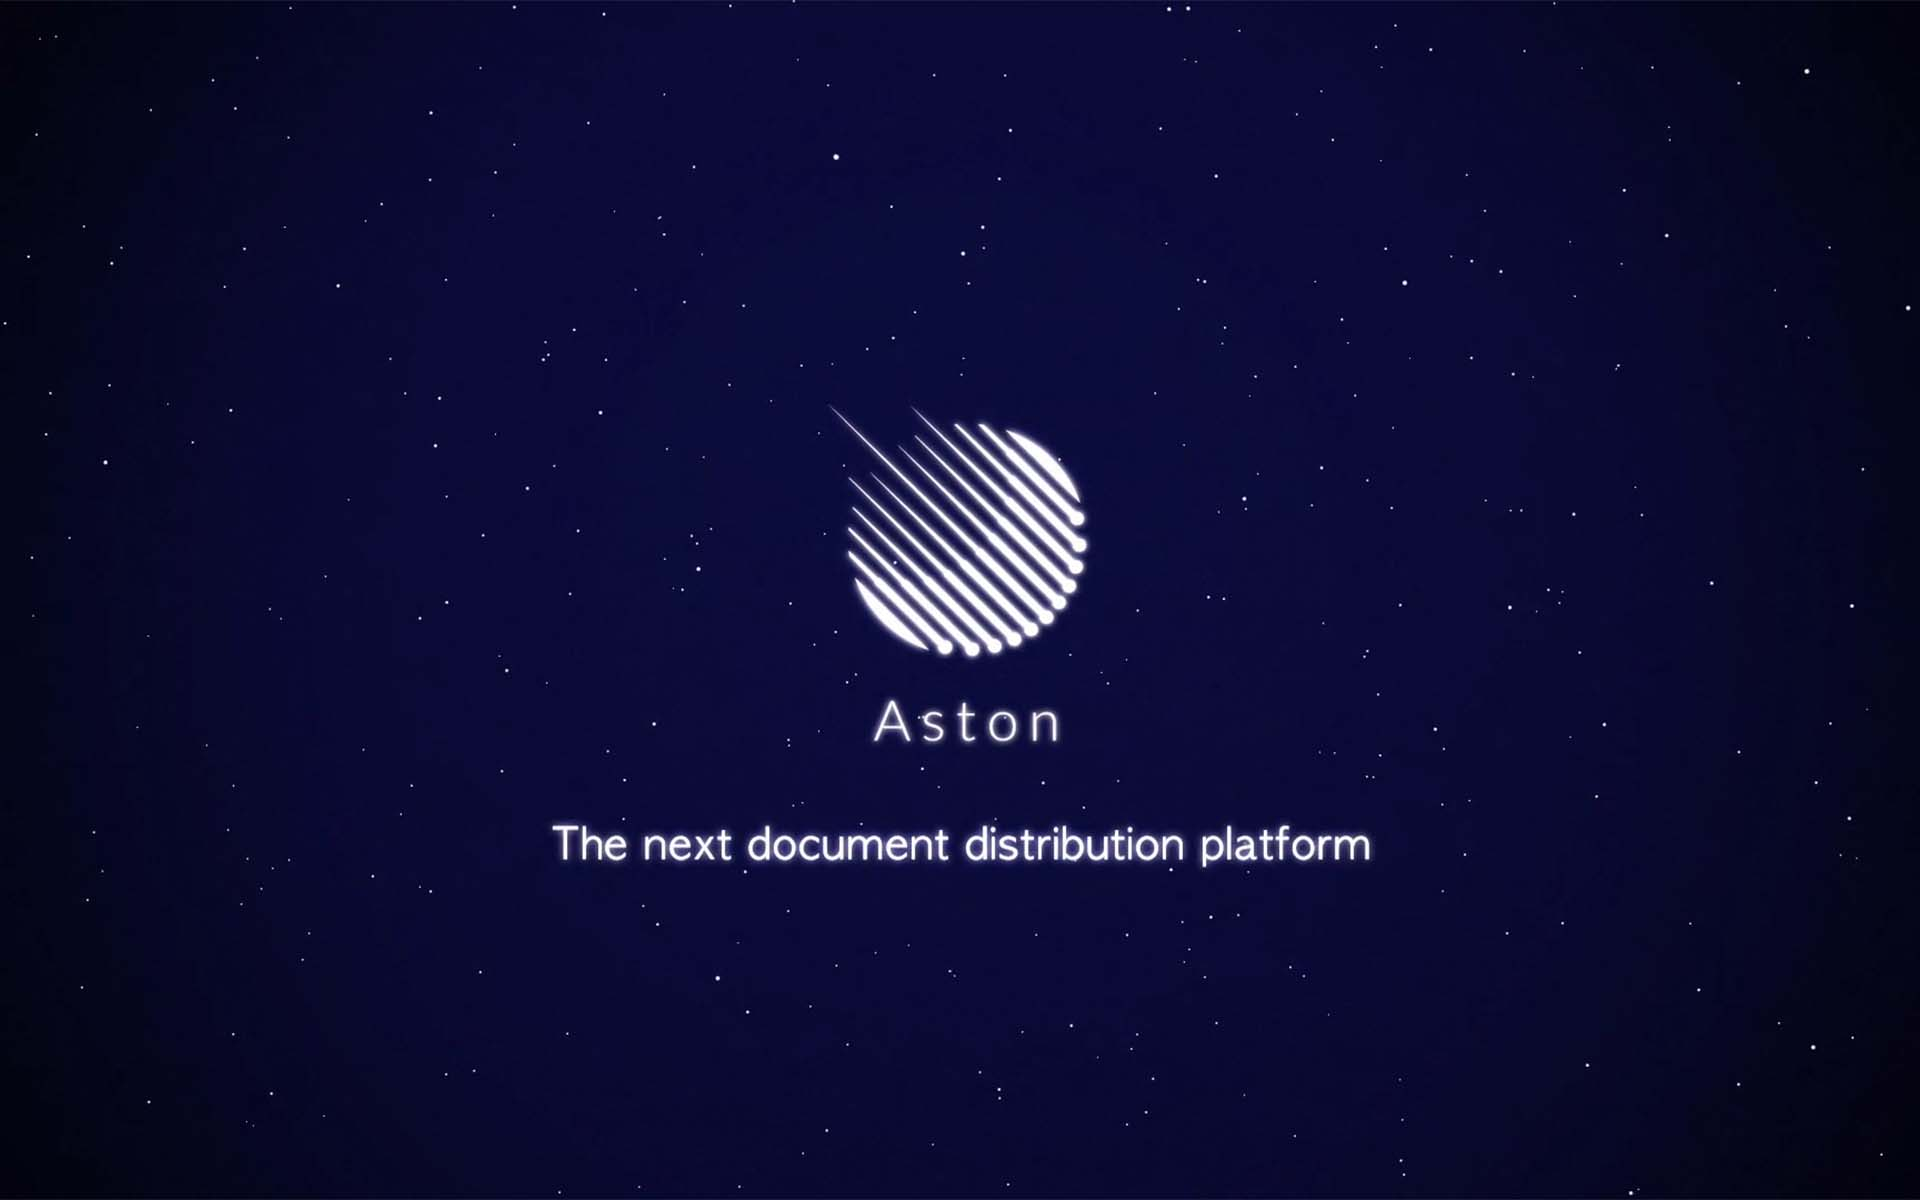 Aston Shakes Up Document Distribution Industry With Launch Of ICO & Next Generation Fully Automated Document Distribution Platform Based On BlockChain Technology